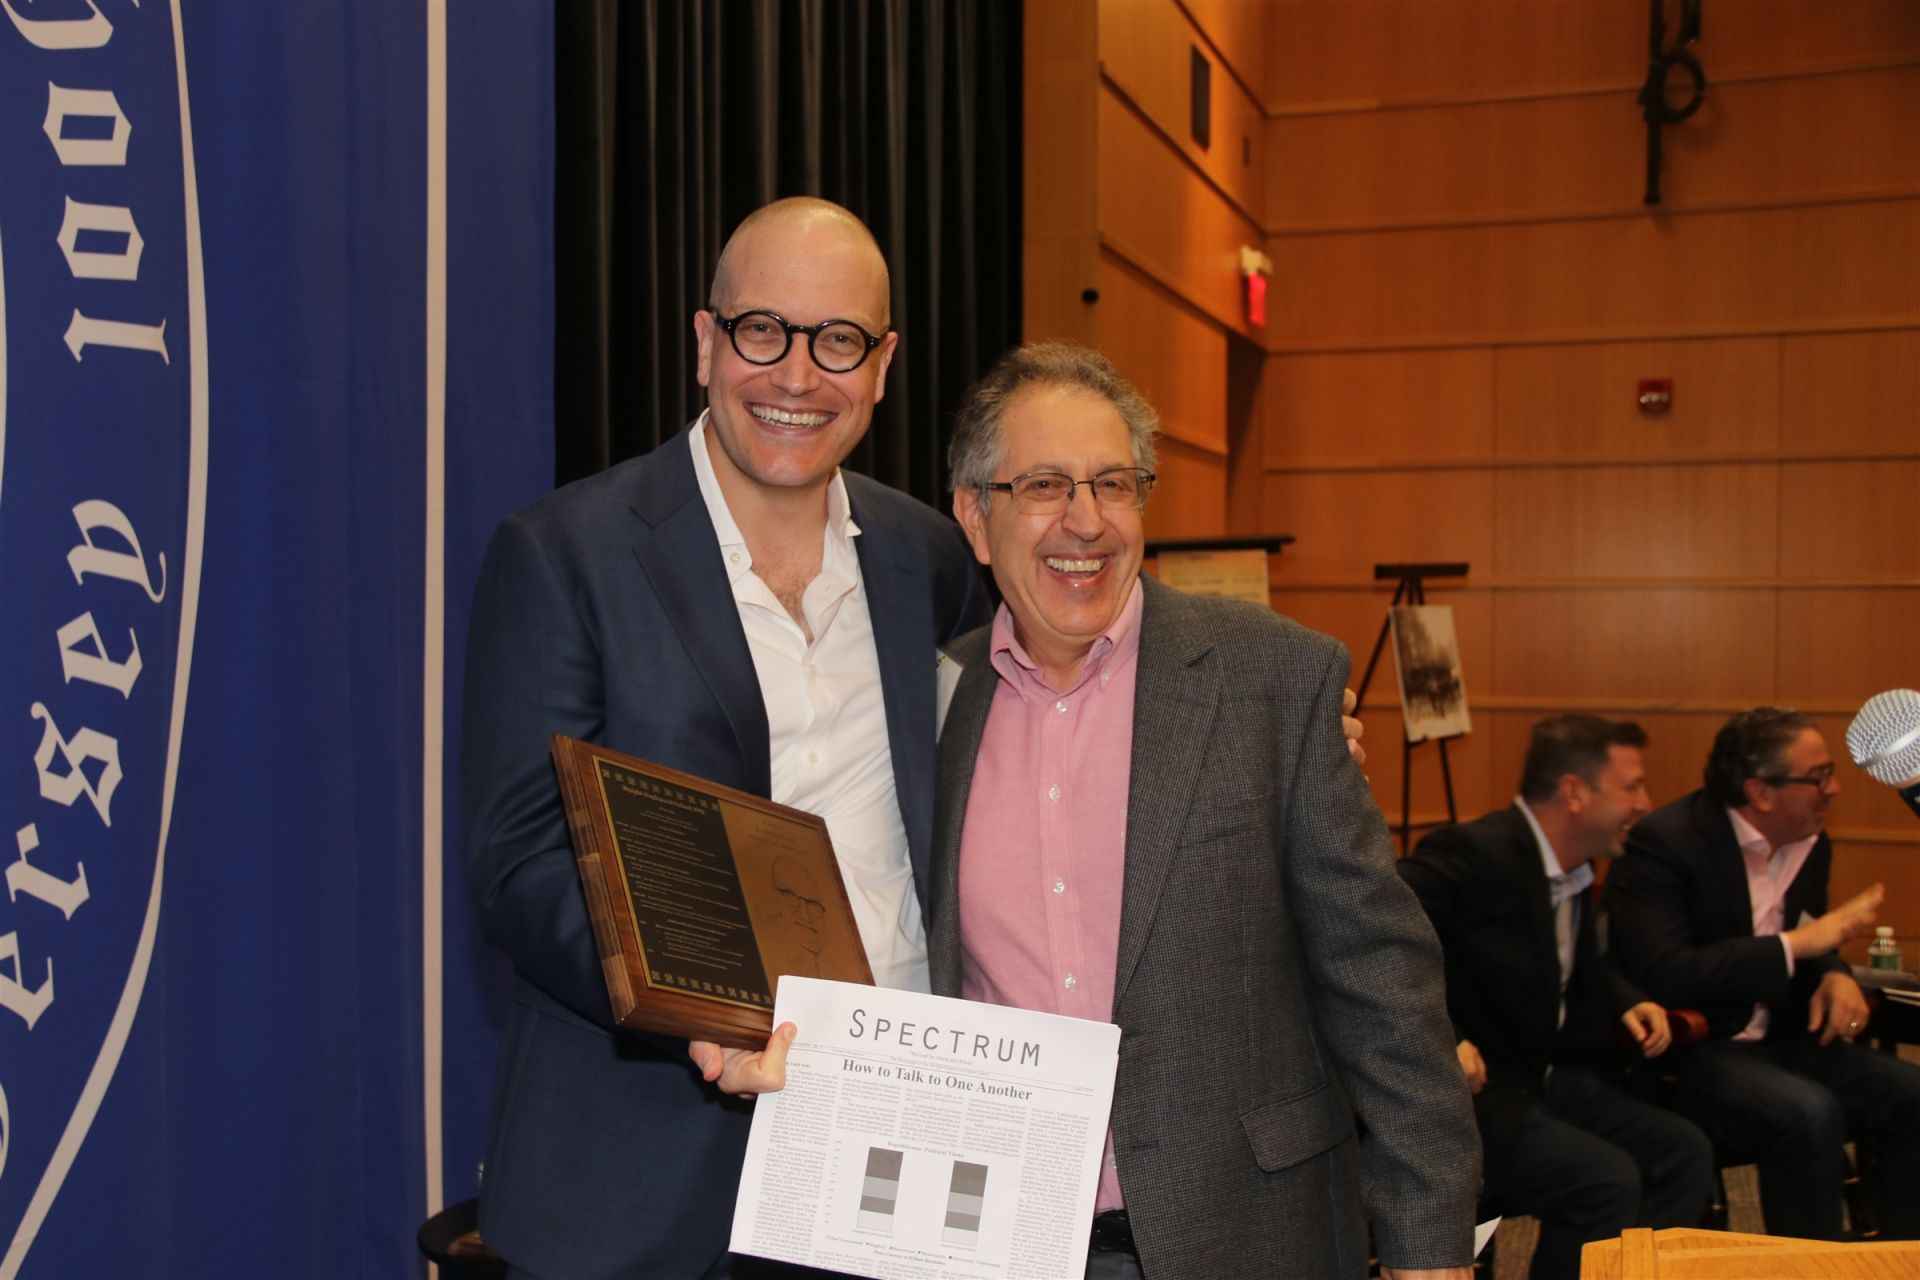 Isaac-Davy Aronson '98 and Peter Bograd